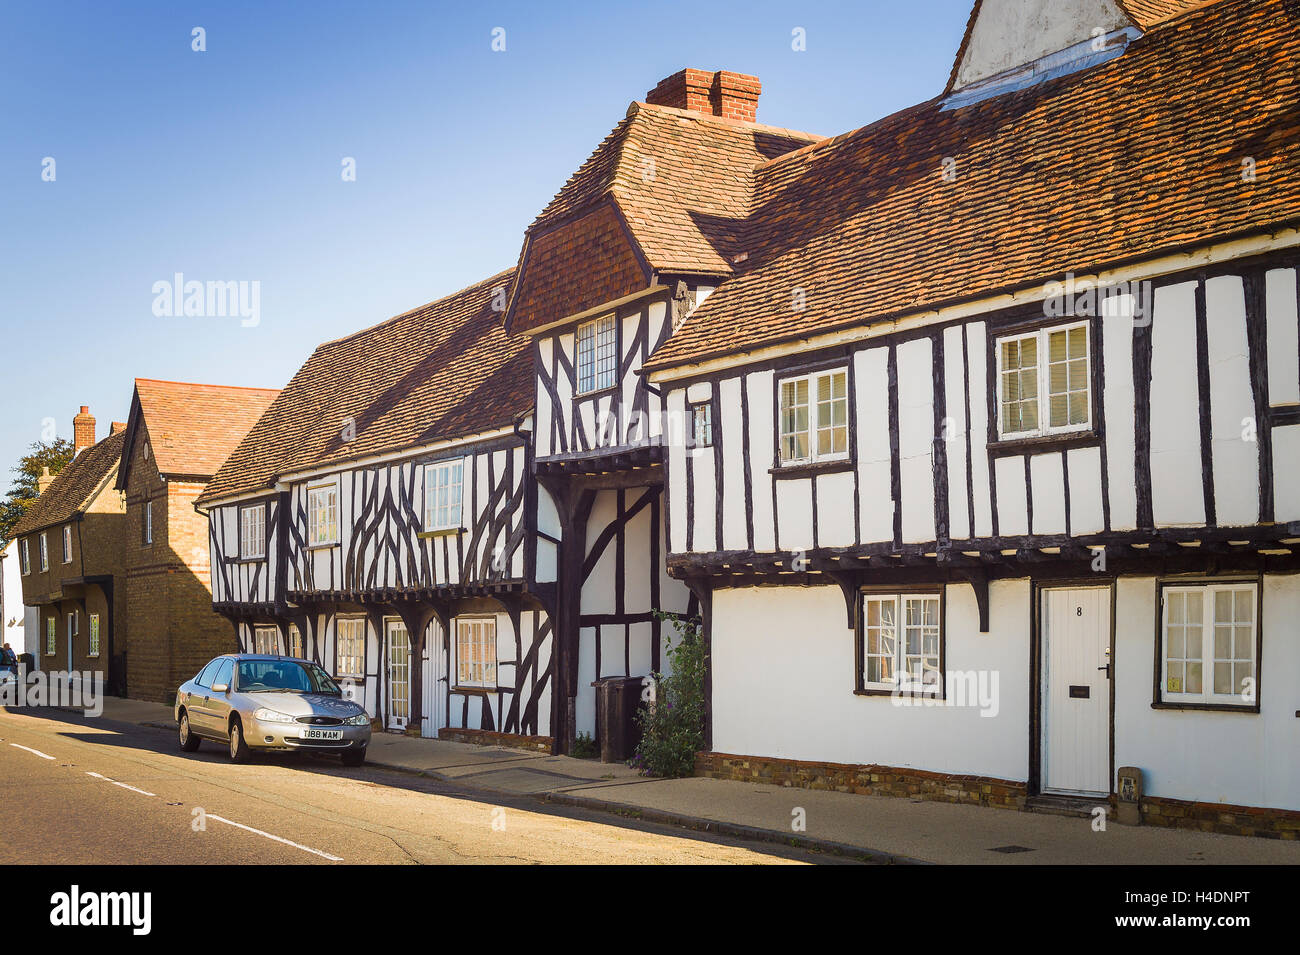 Old half-timbered cottages in Elstow village Bedfordshire UK - Stock Image